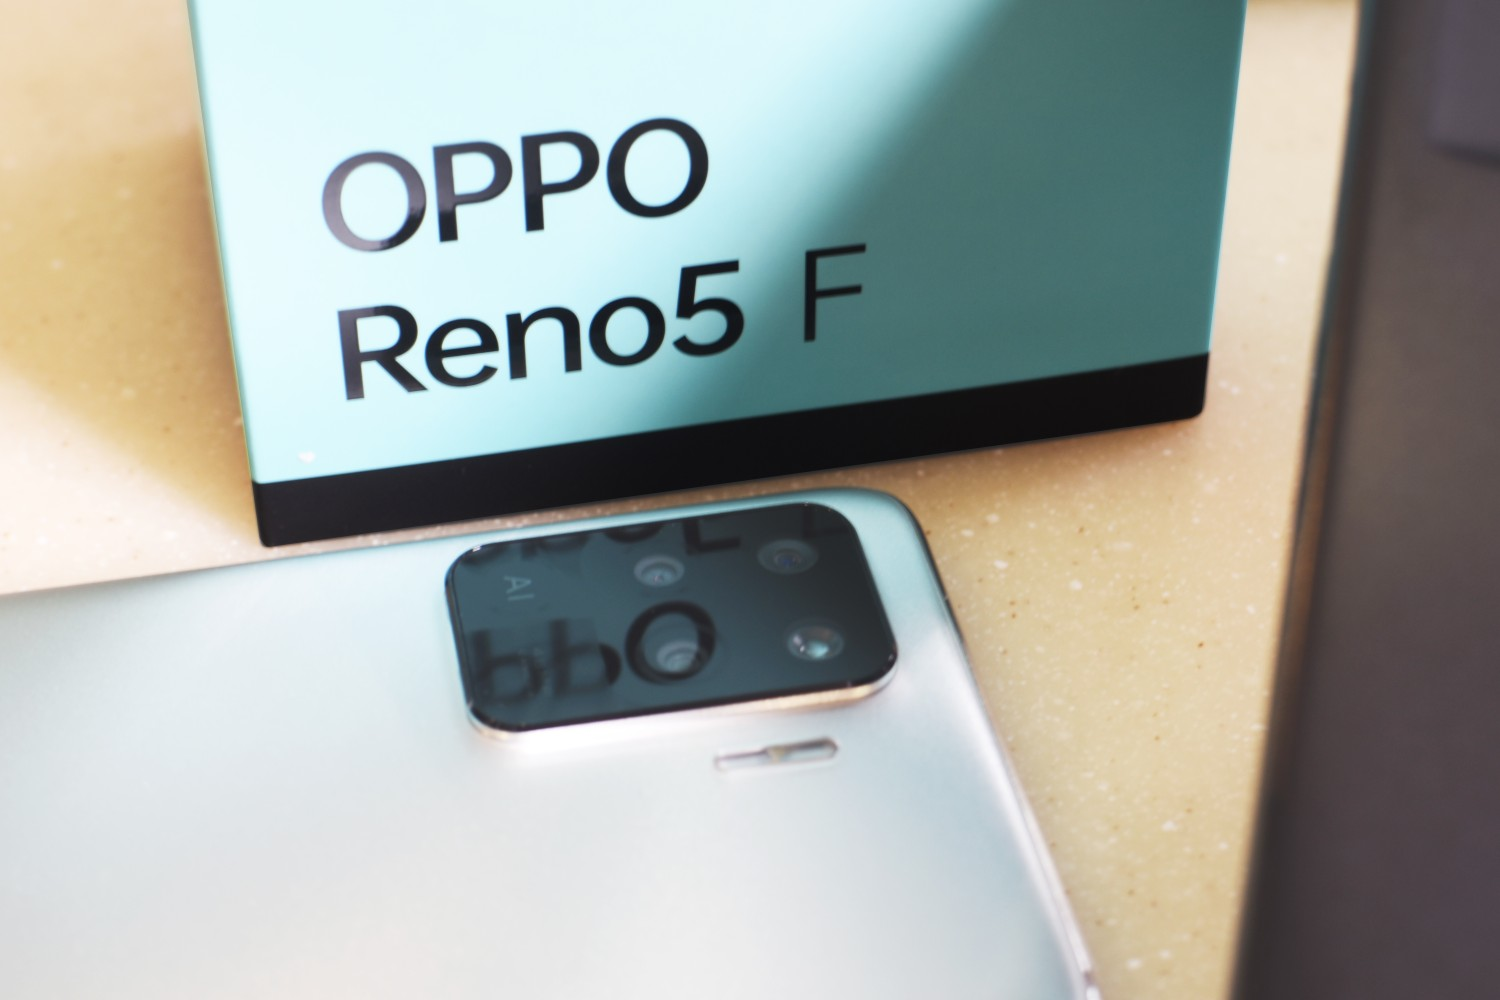 OPPO Reno5 F Crystal Silver Variant Have Officially Launched